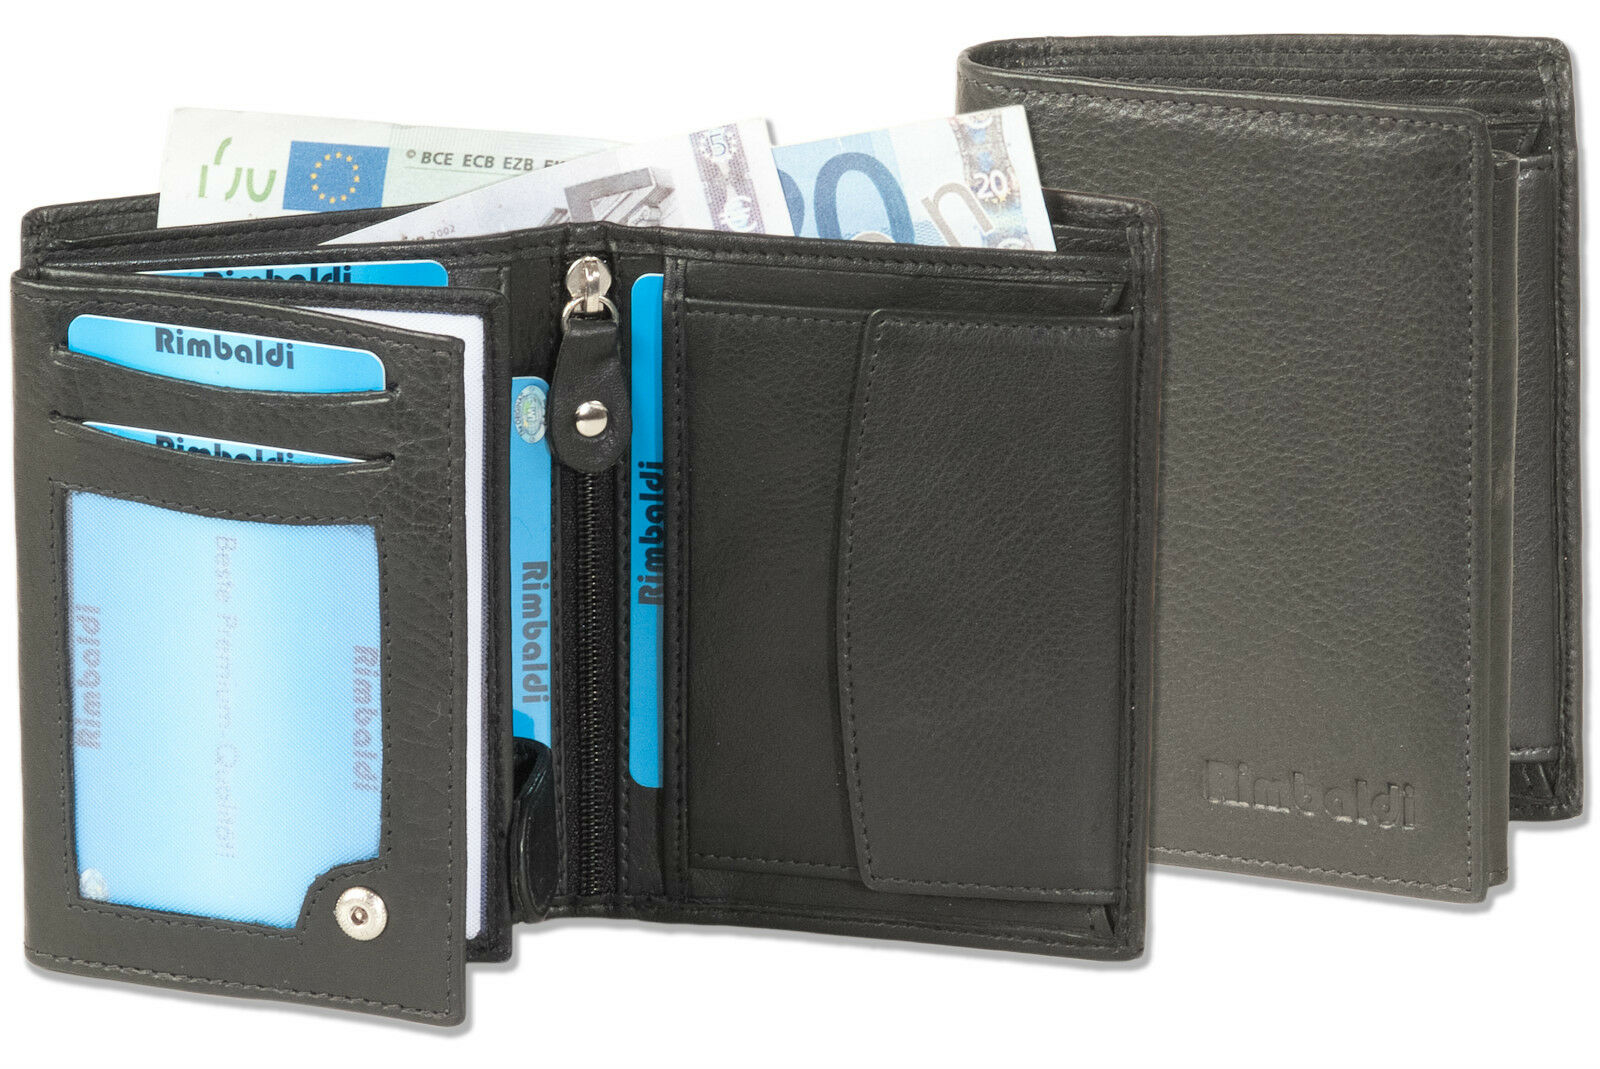 Rimbaldi Men's Wallet IN Portrait Mode From Untreated Leather IN Black